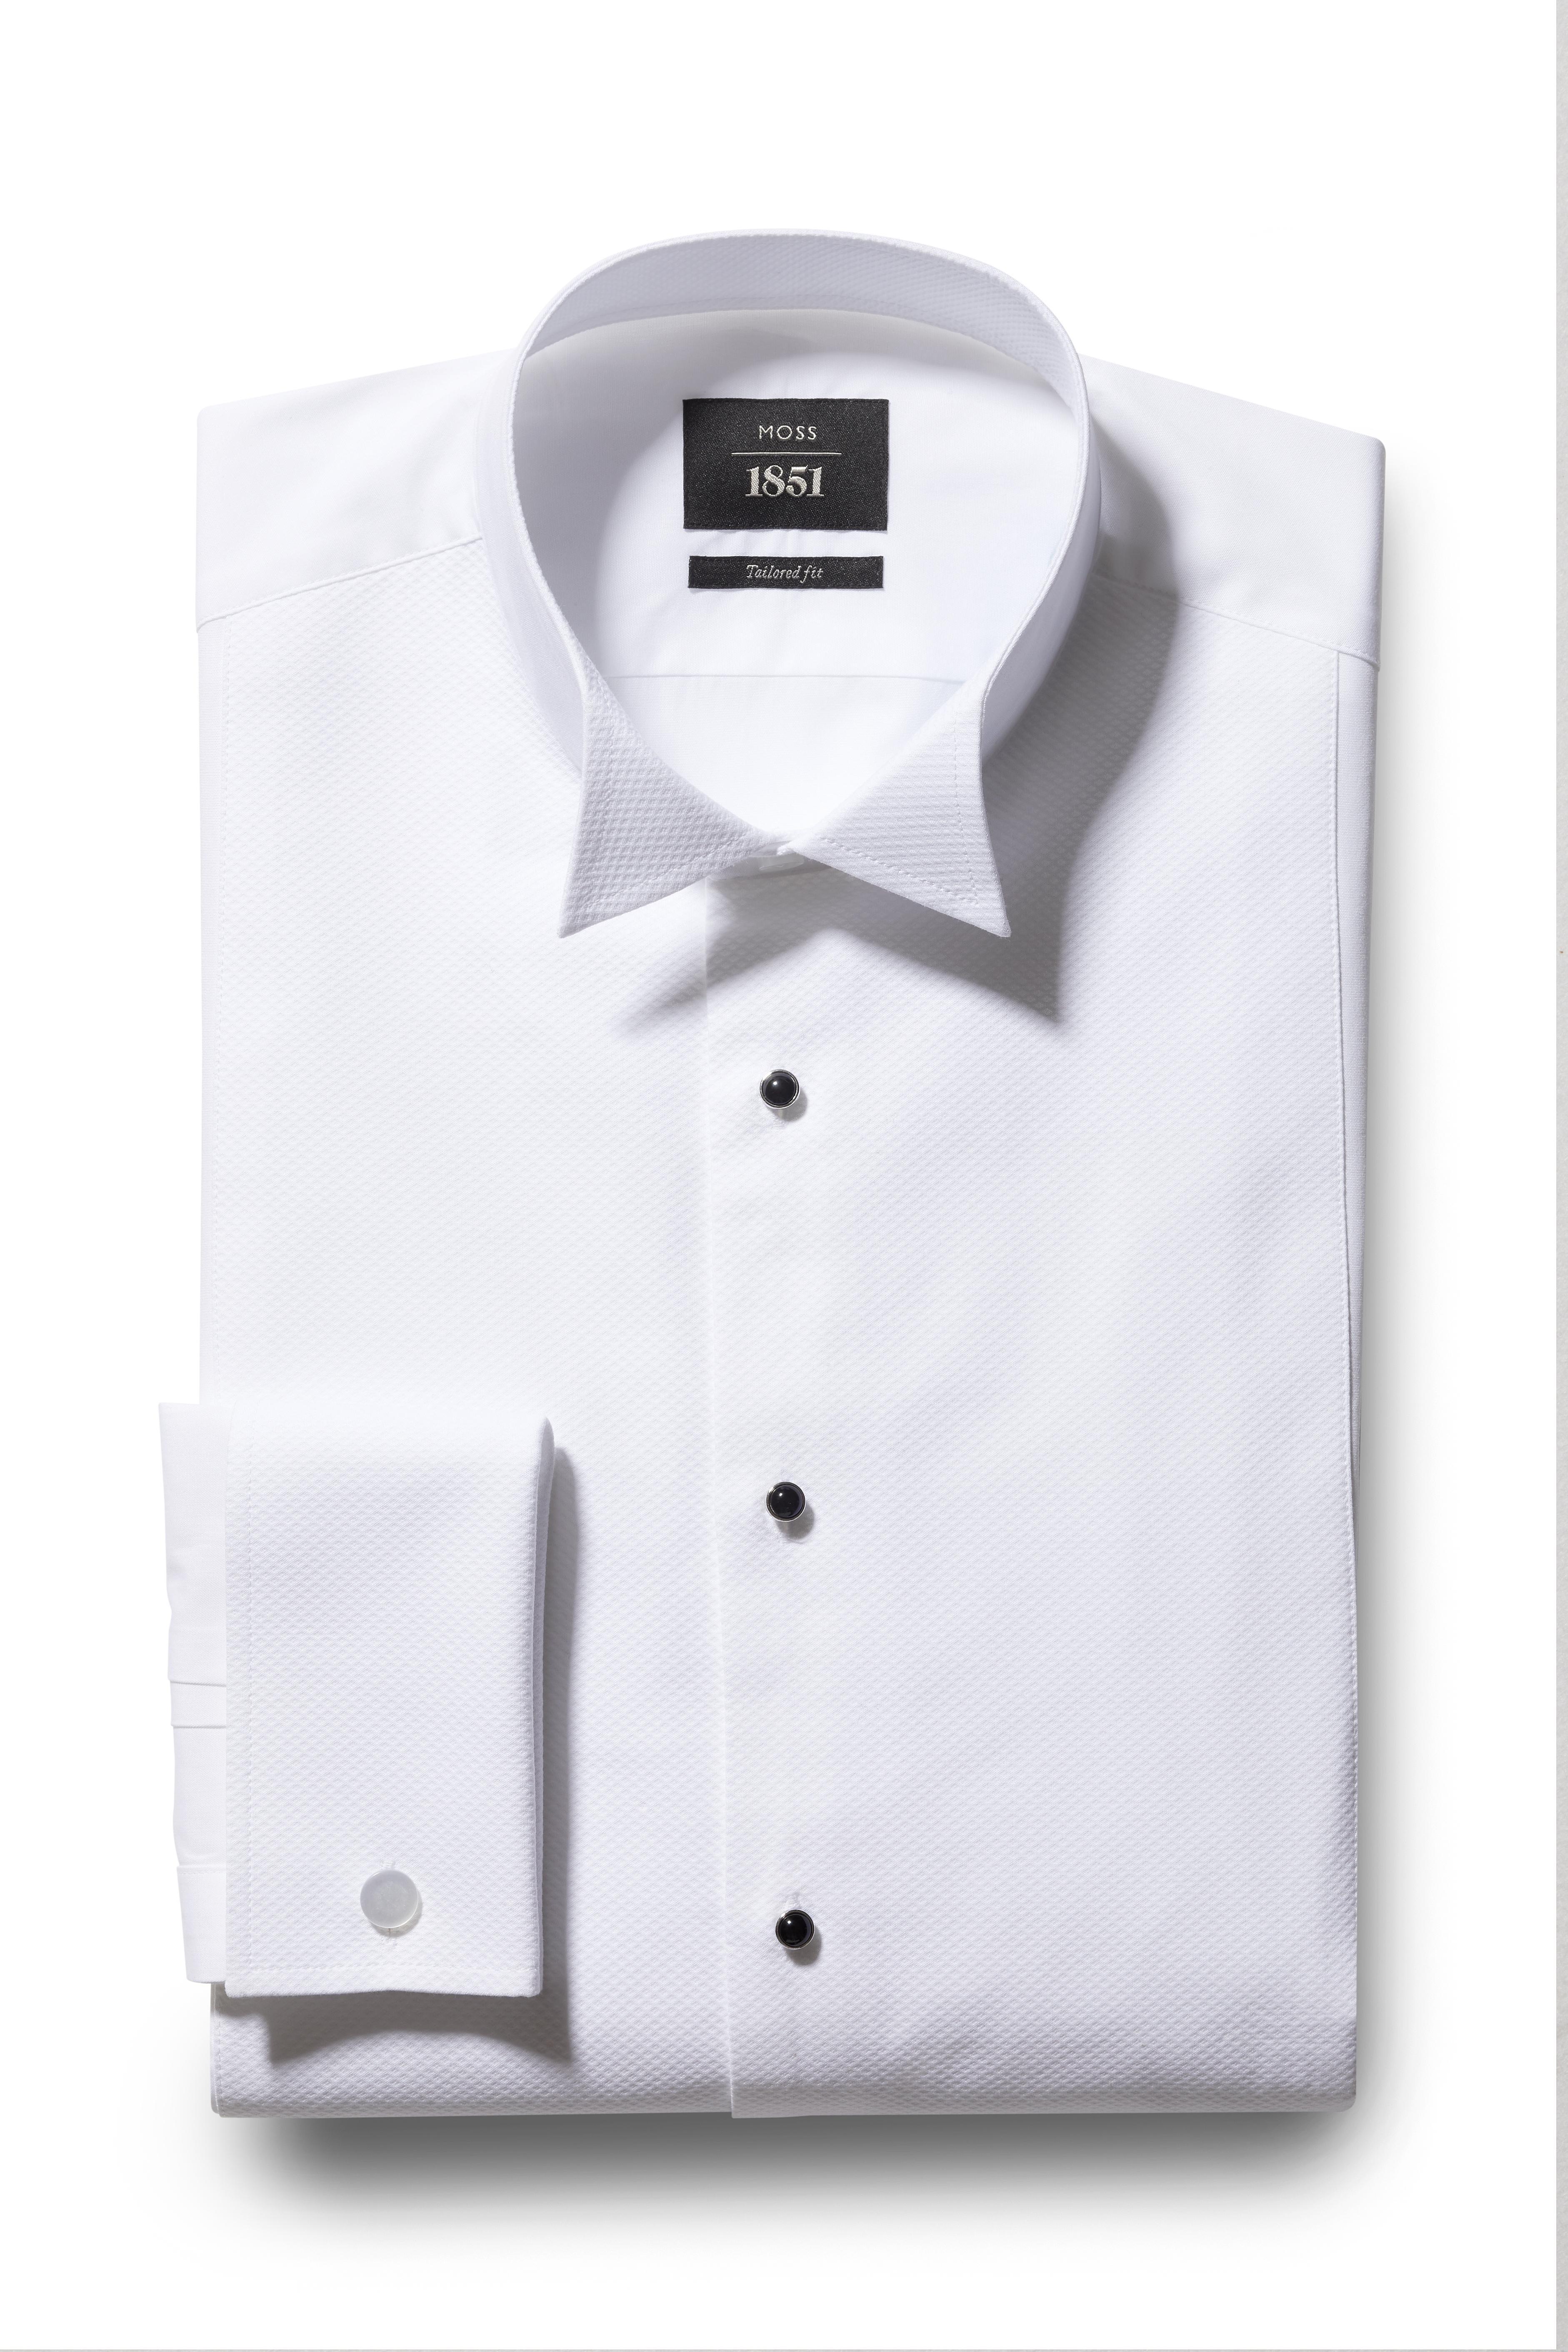 Moss 1851 Slim Fit Marcella Wing Collar Dress Shirt